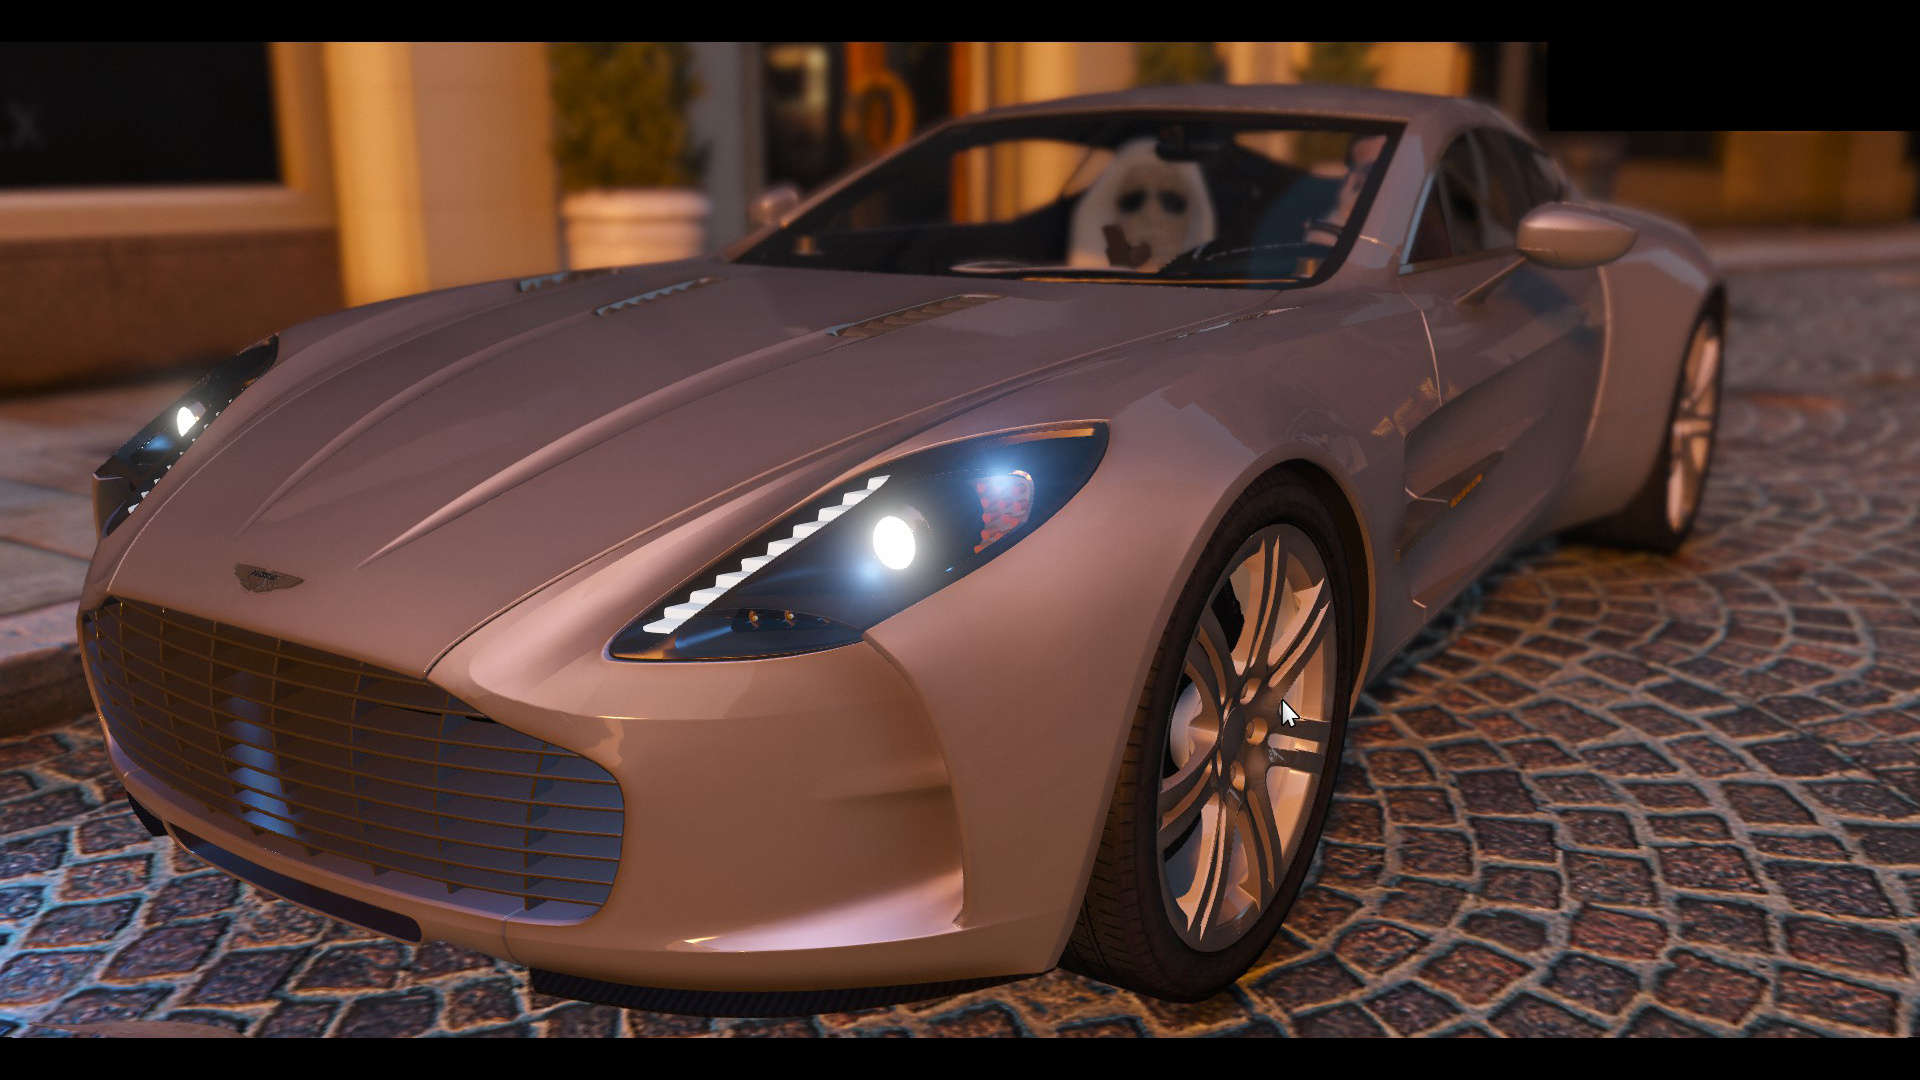 2012 aston martin one 77 hq autospoiler tuning dirtmap gta5. Black Bedroom Furniture Sets. Home Design Ideas